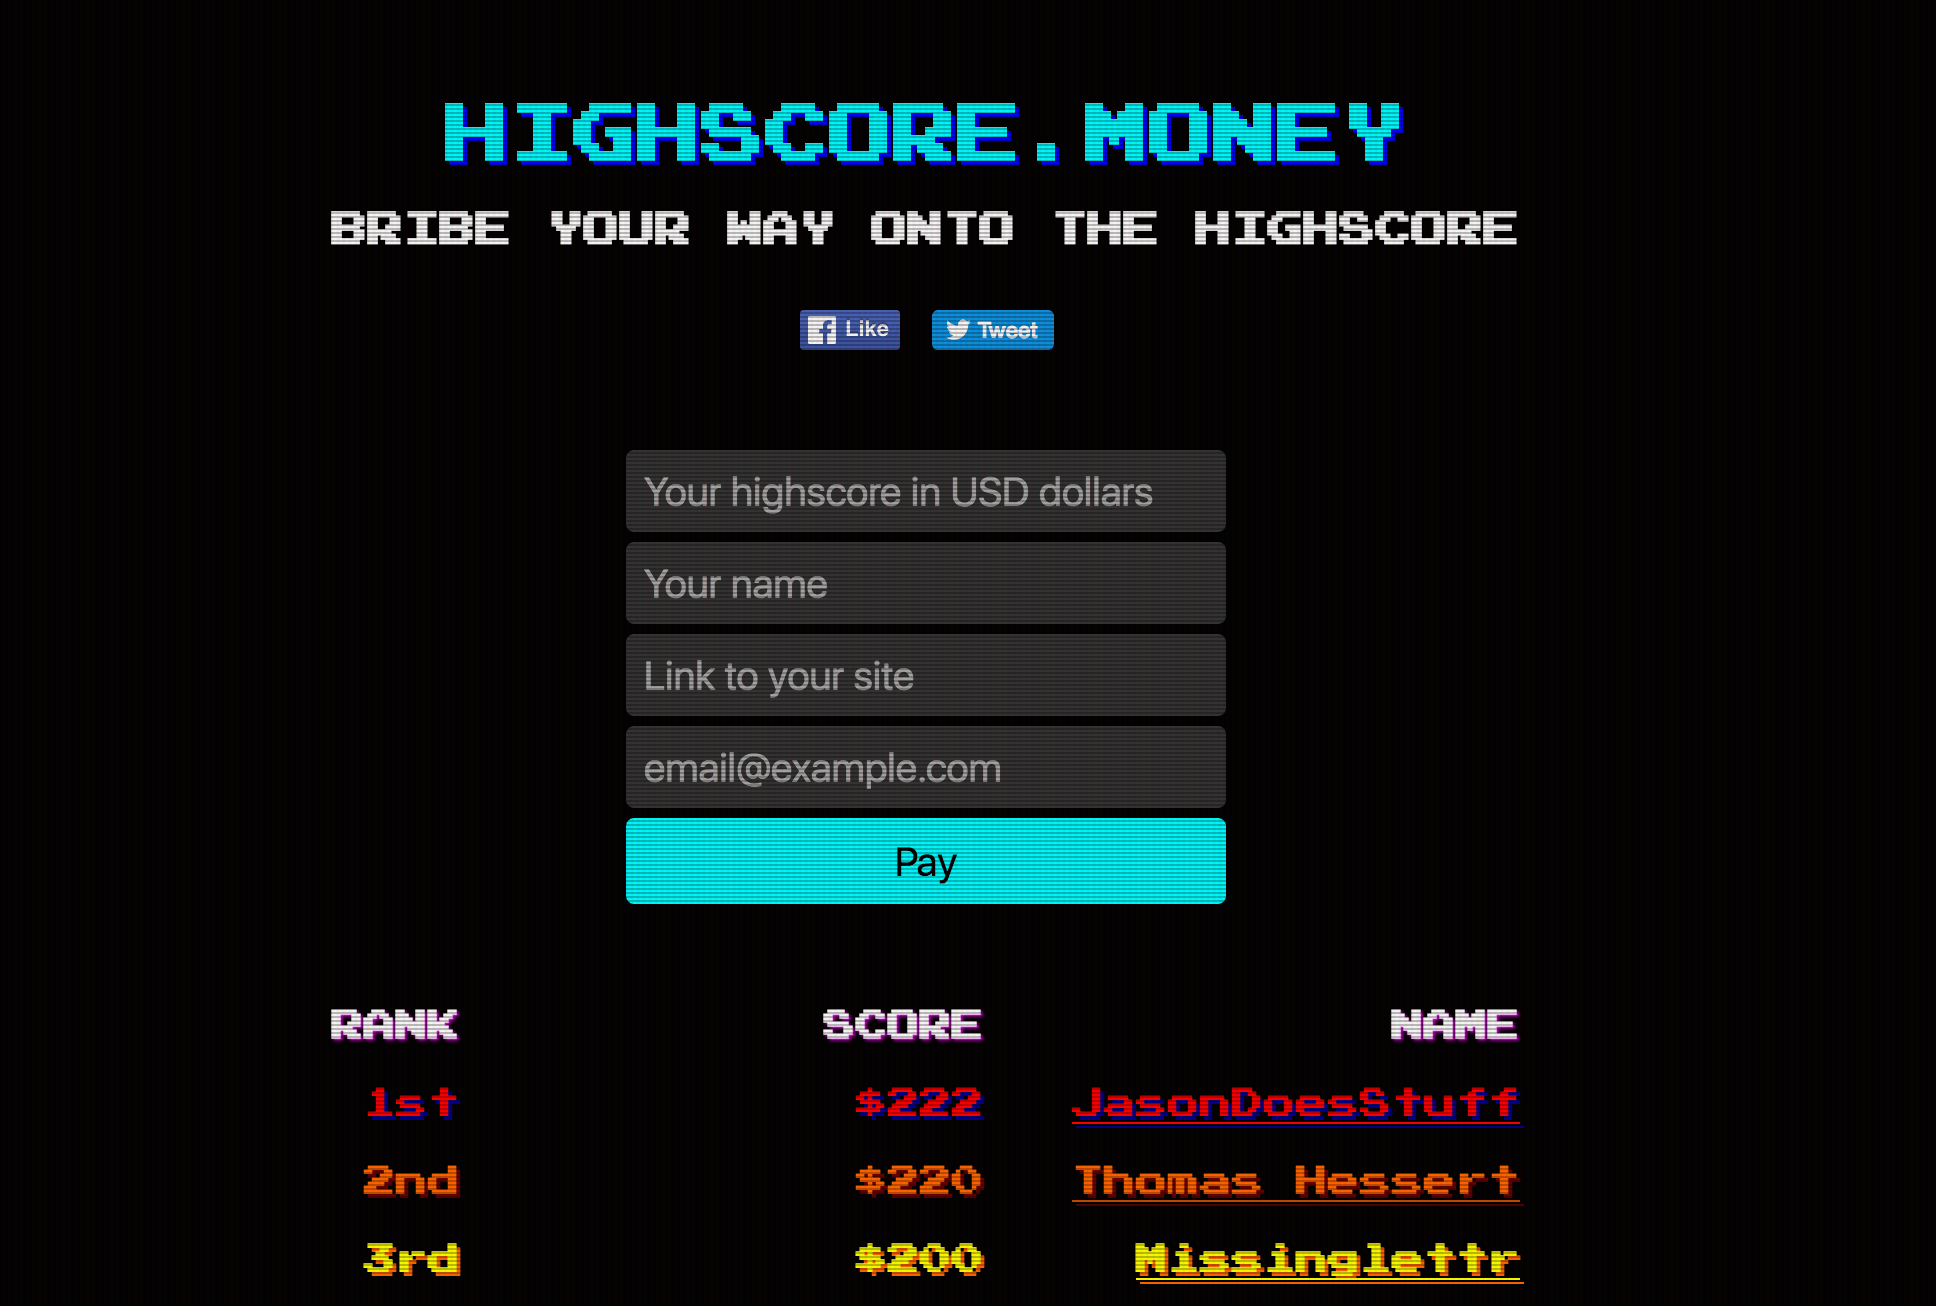 Highscore.money and JasonDoesStuff